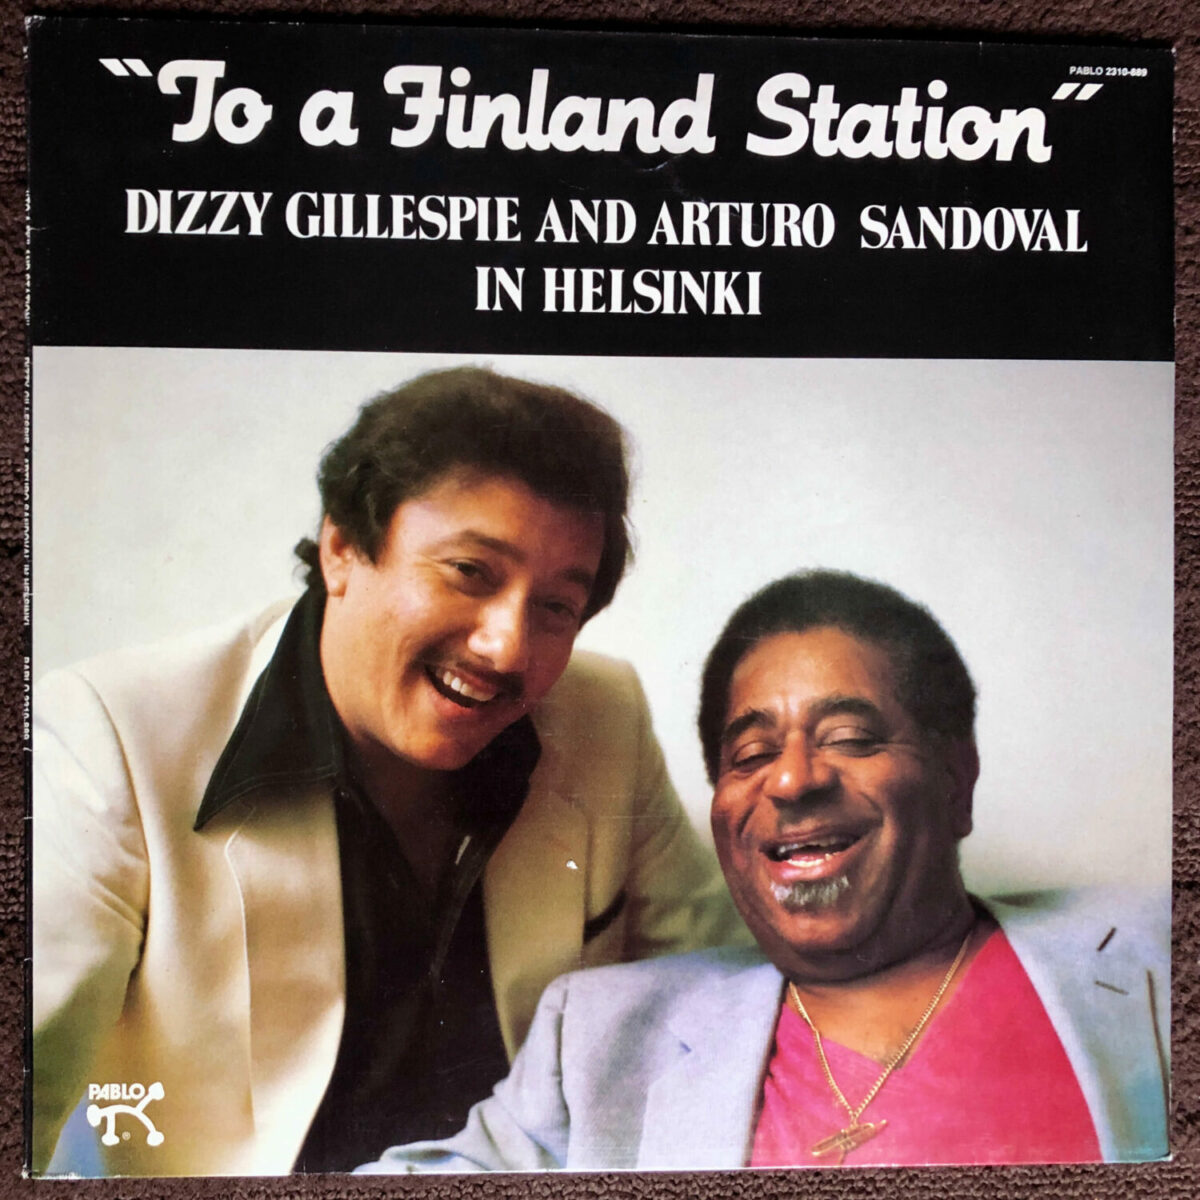 """""""To a Finland station"""" by Dizzy Gillespie and Arturo Sandoval"""